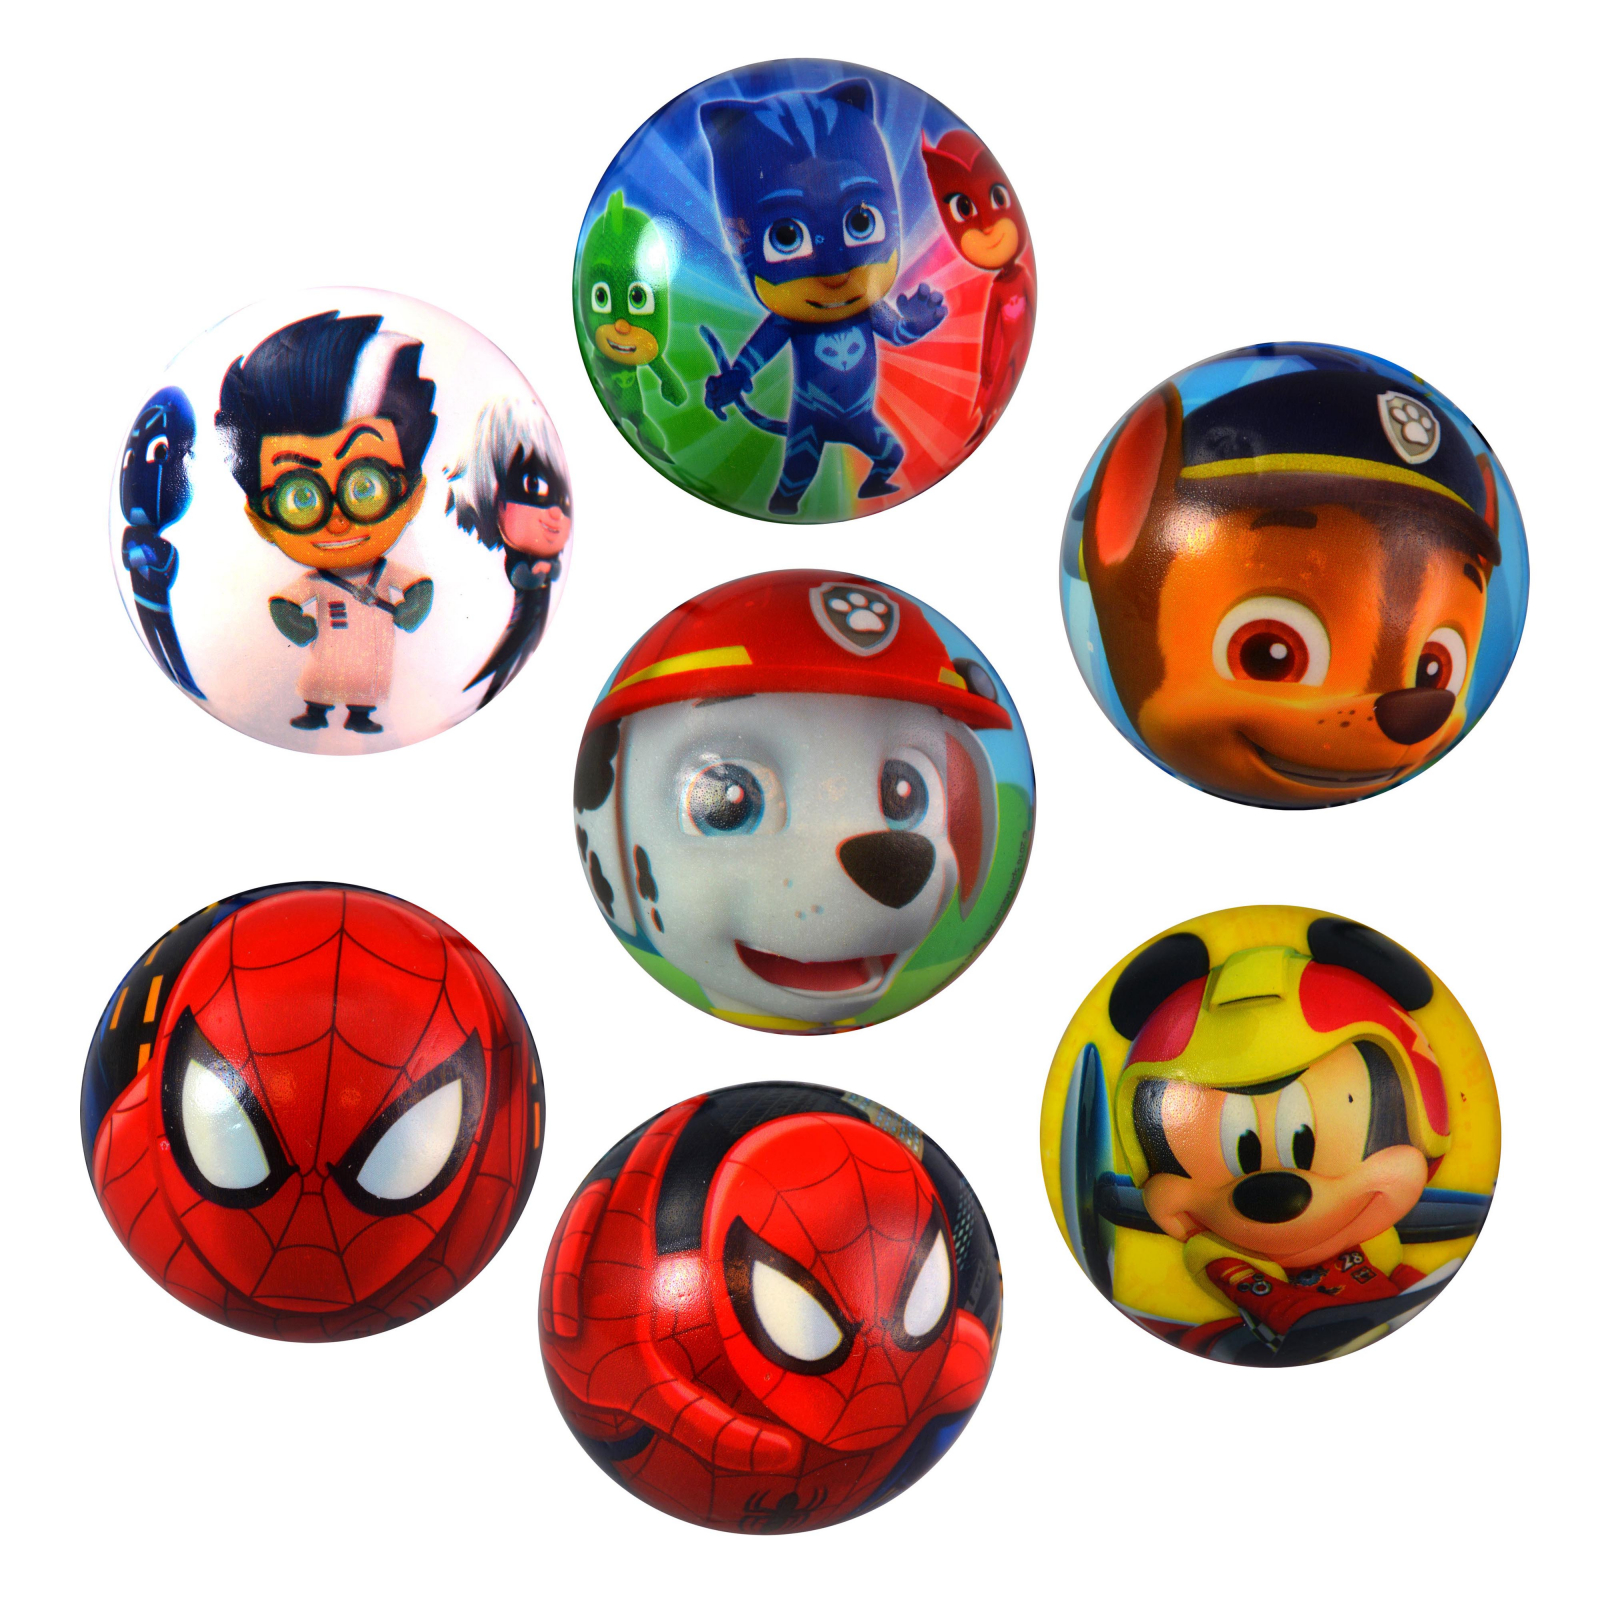 Spider-Man 3 Inch Blue Foam Ball Sports Toys for Kids